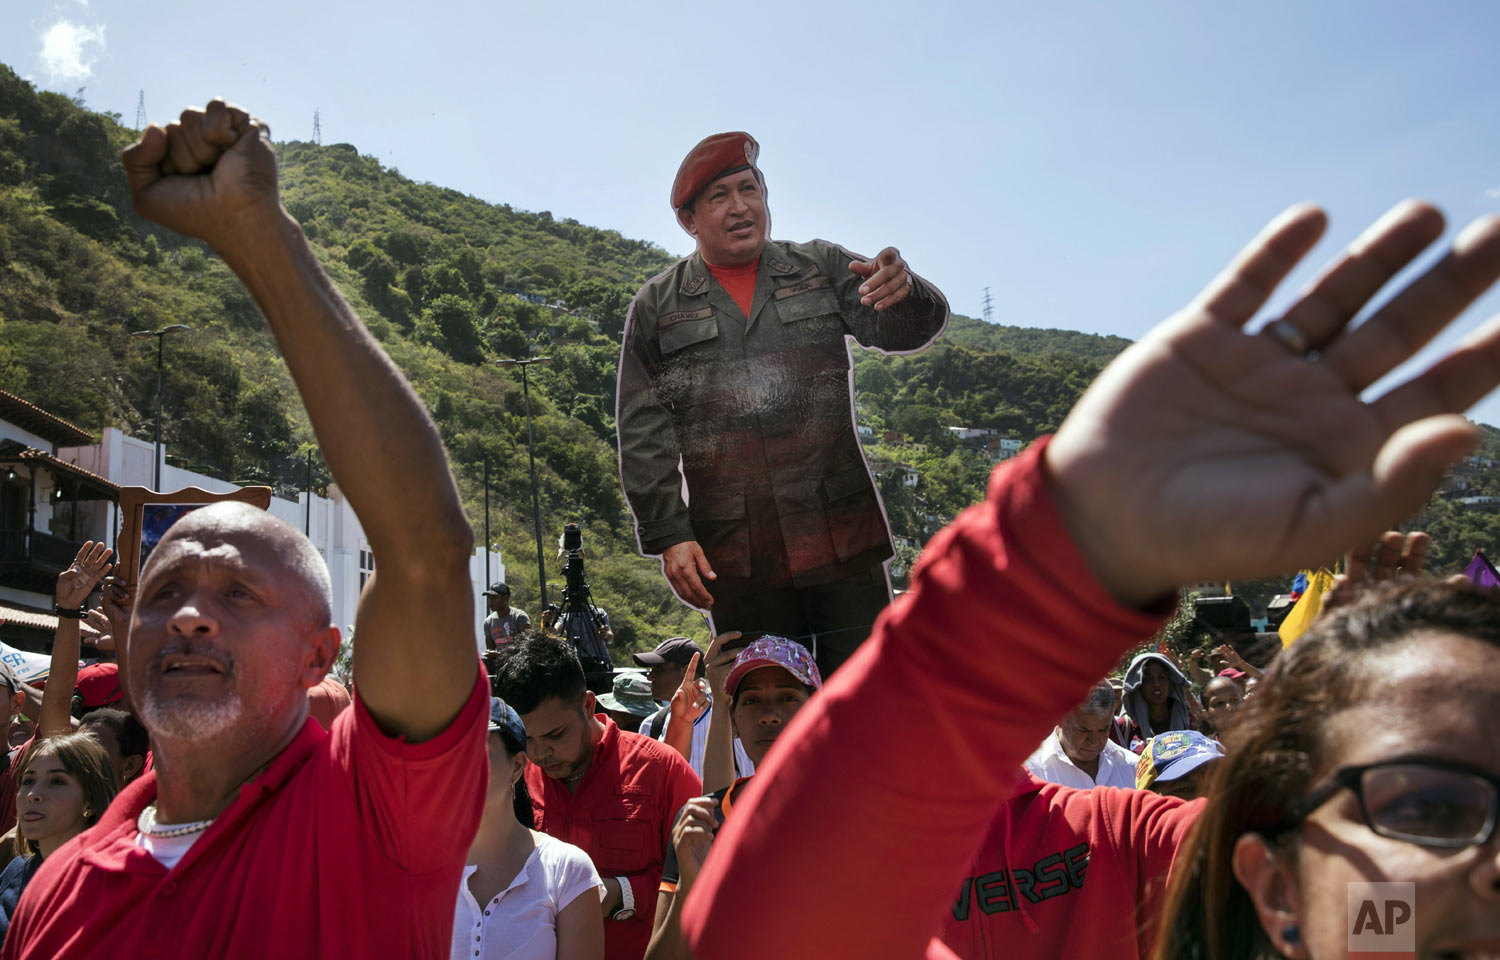 Government supporters hold a life-size image of Venezuela's late President Hugo Chavez during a rally in La Guaira, Venezuela, Friday, Jan. 25, 2019. Venezuelan President Nicolas Maduro, Chavez's protege, says he's willing to engage in talks with the opposition in order to avoid violence in a conflict over who is the legitimate leader of the country. (AP Photo/Rodrigo Abd)